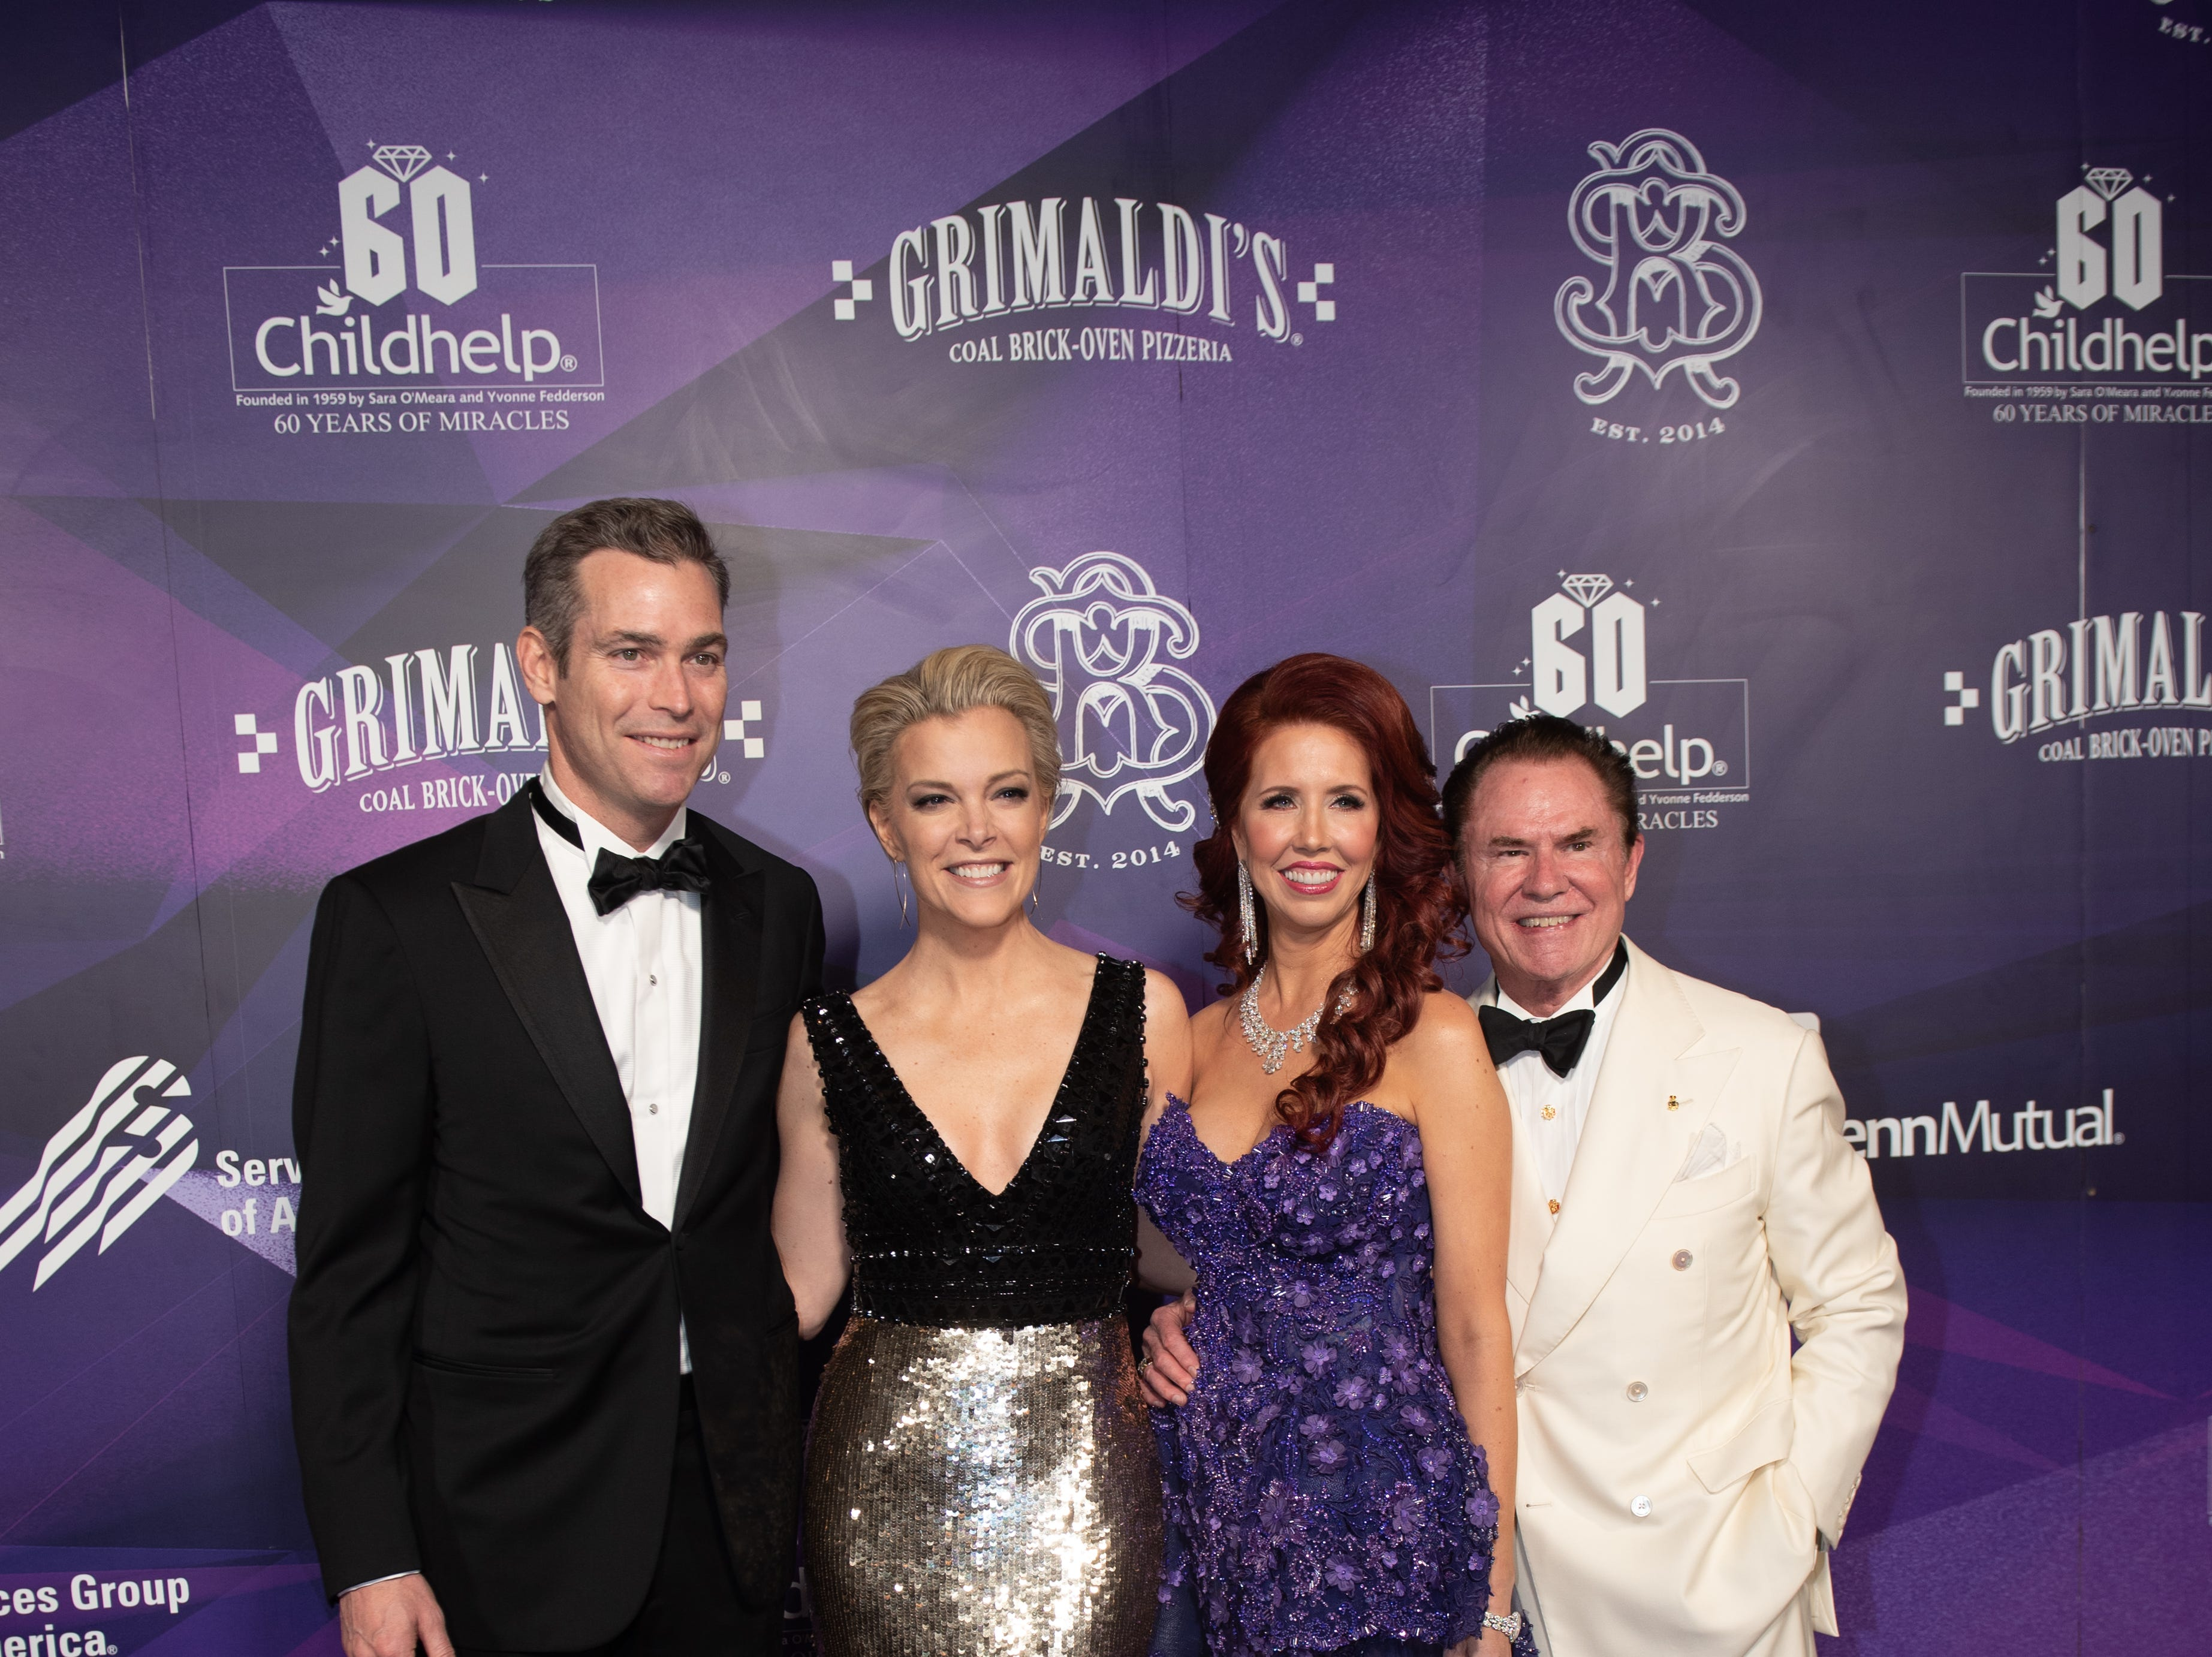 Douglas Brunt, Childhelp Celebrity Ambassador Megyn Kelly, with Gala Co-Chairs Stacie J. Stephenson and Richard J. Stephenson attended the Childhelp Drive the Dream Gala on February 2, 2019.